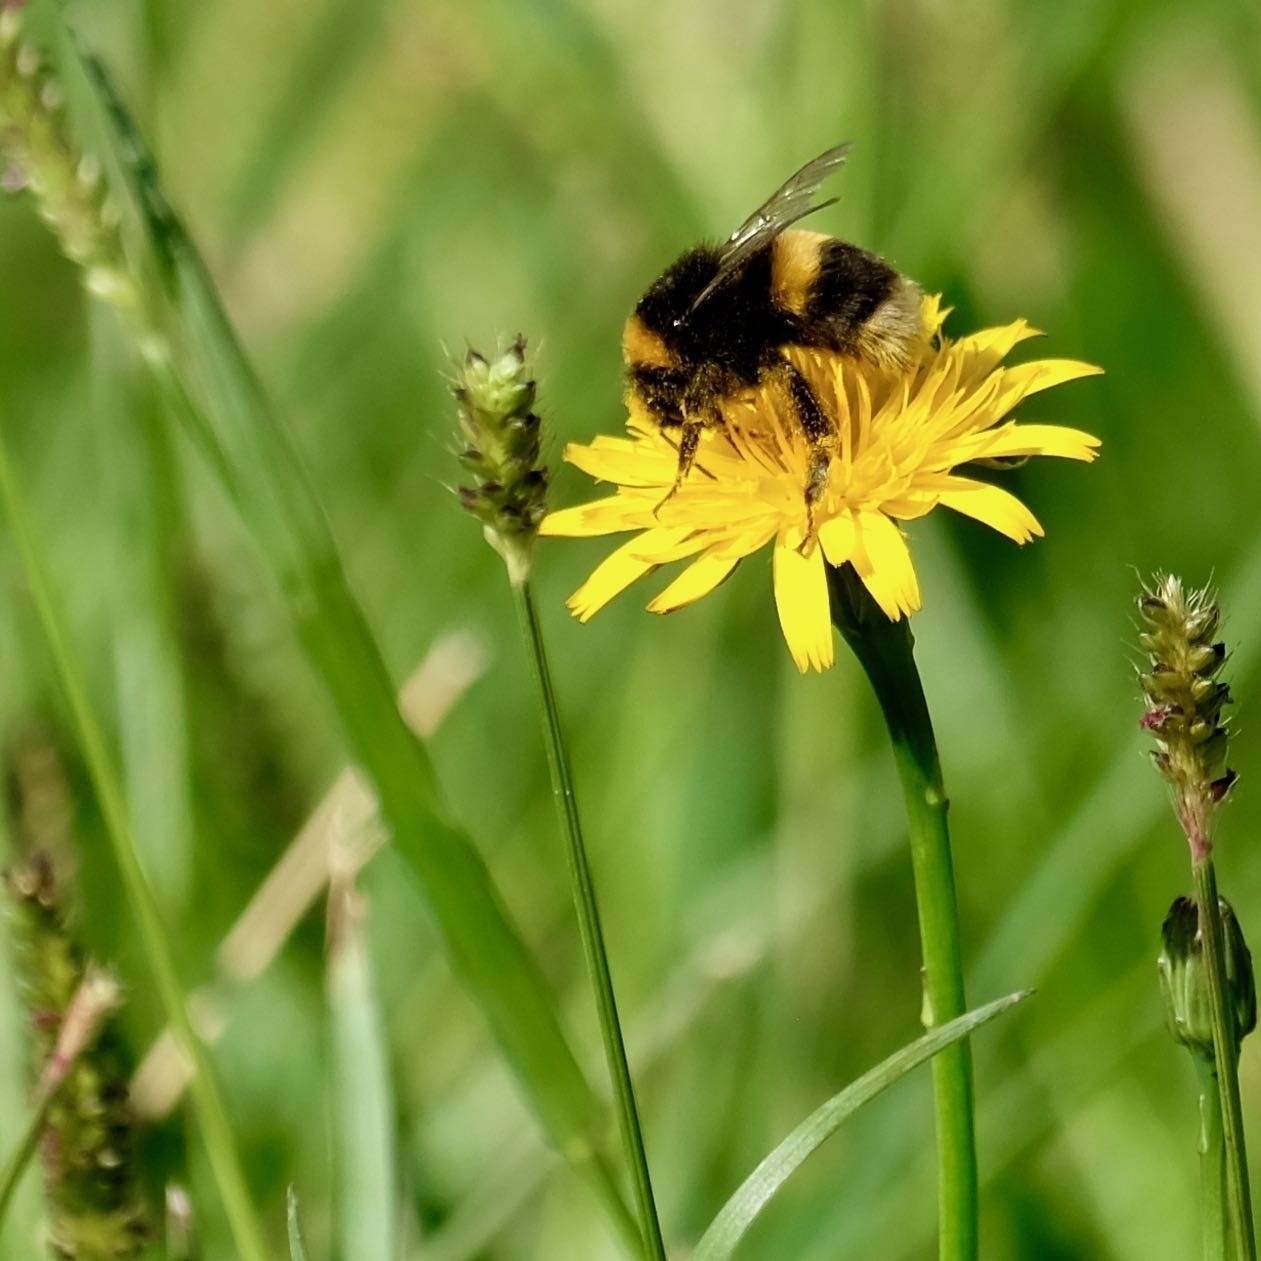 Bumblebee covered in pollen on a dandelion flower.